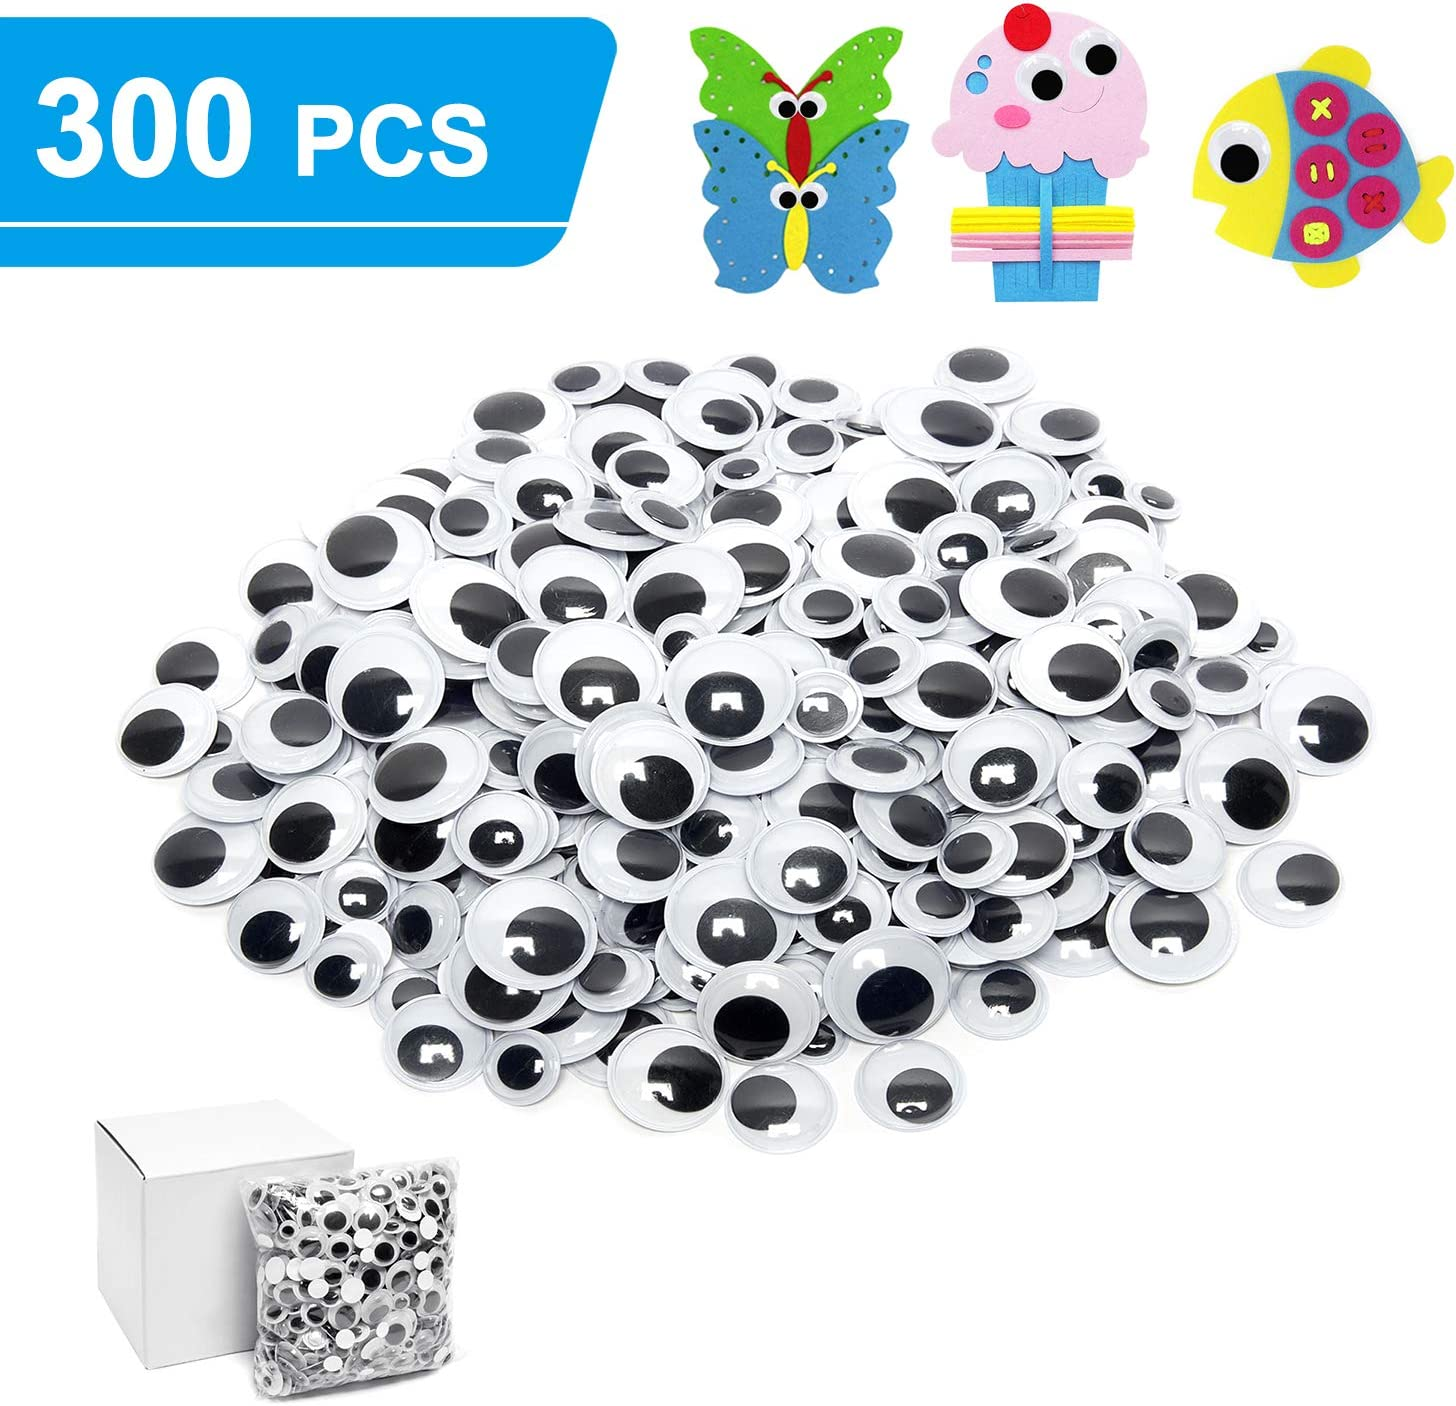 for Craft Sticker Multi Sizes 12mm 15mm 18mm 20mm 22mm 25mm for DIY by ZZYI 300pcs Googly Wiggle Eyes Self Adhesive